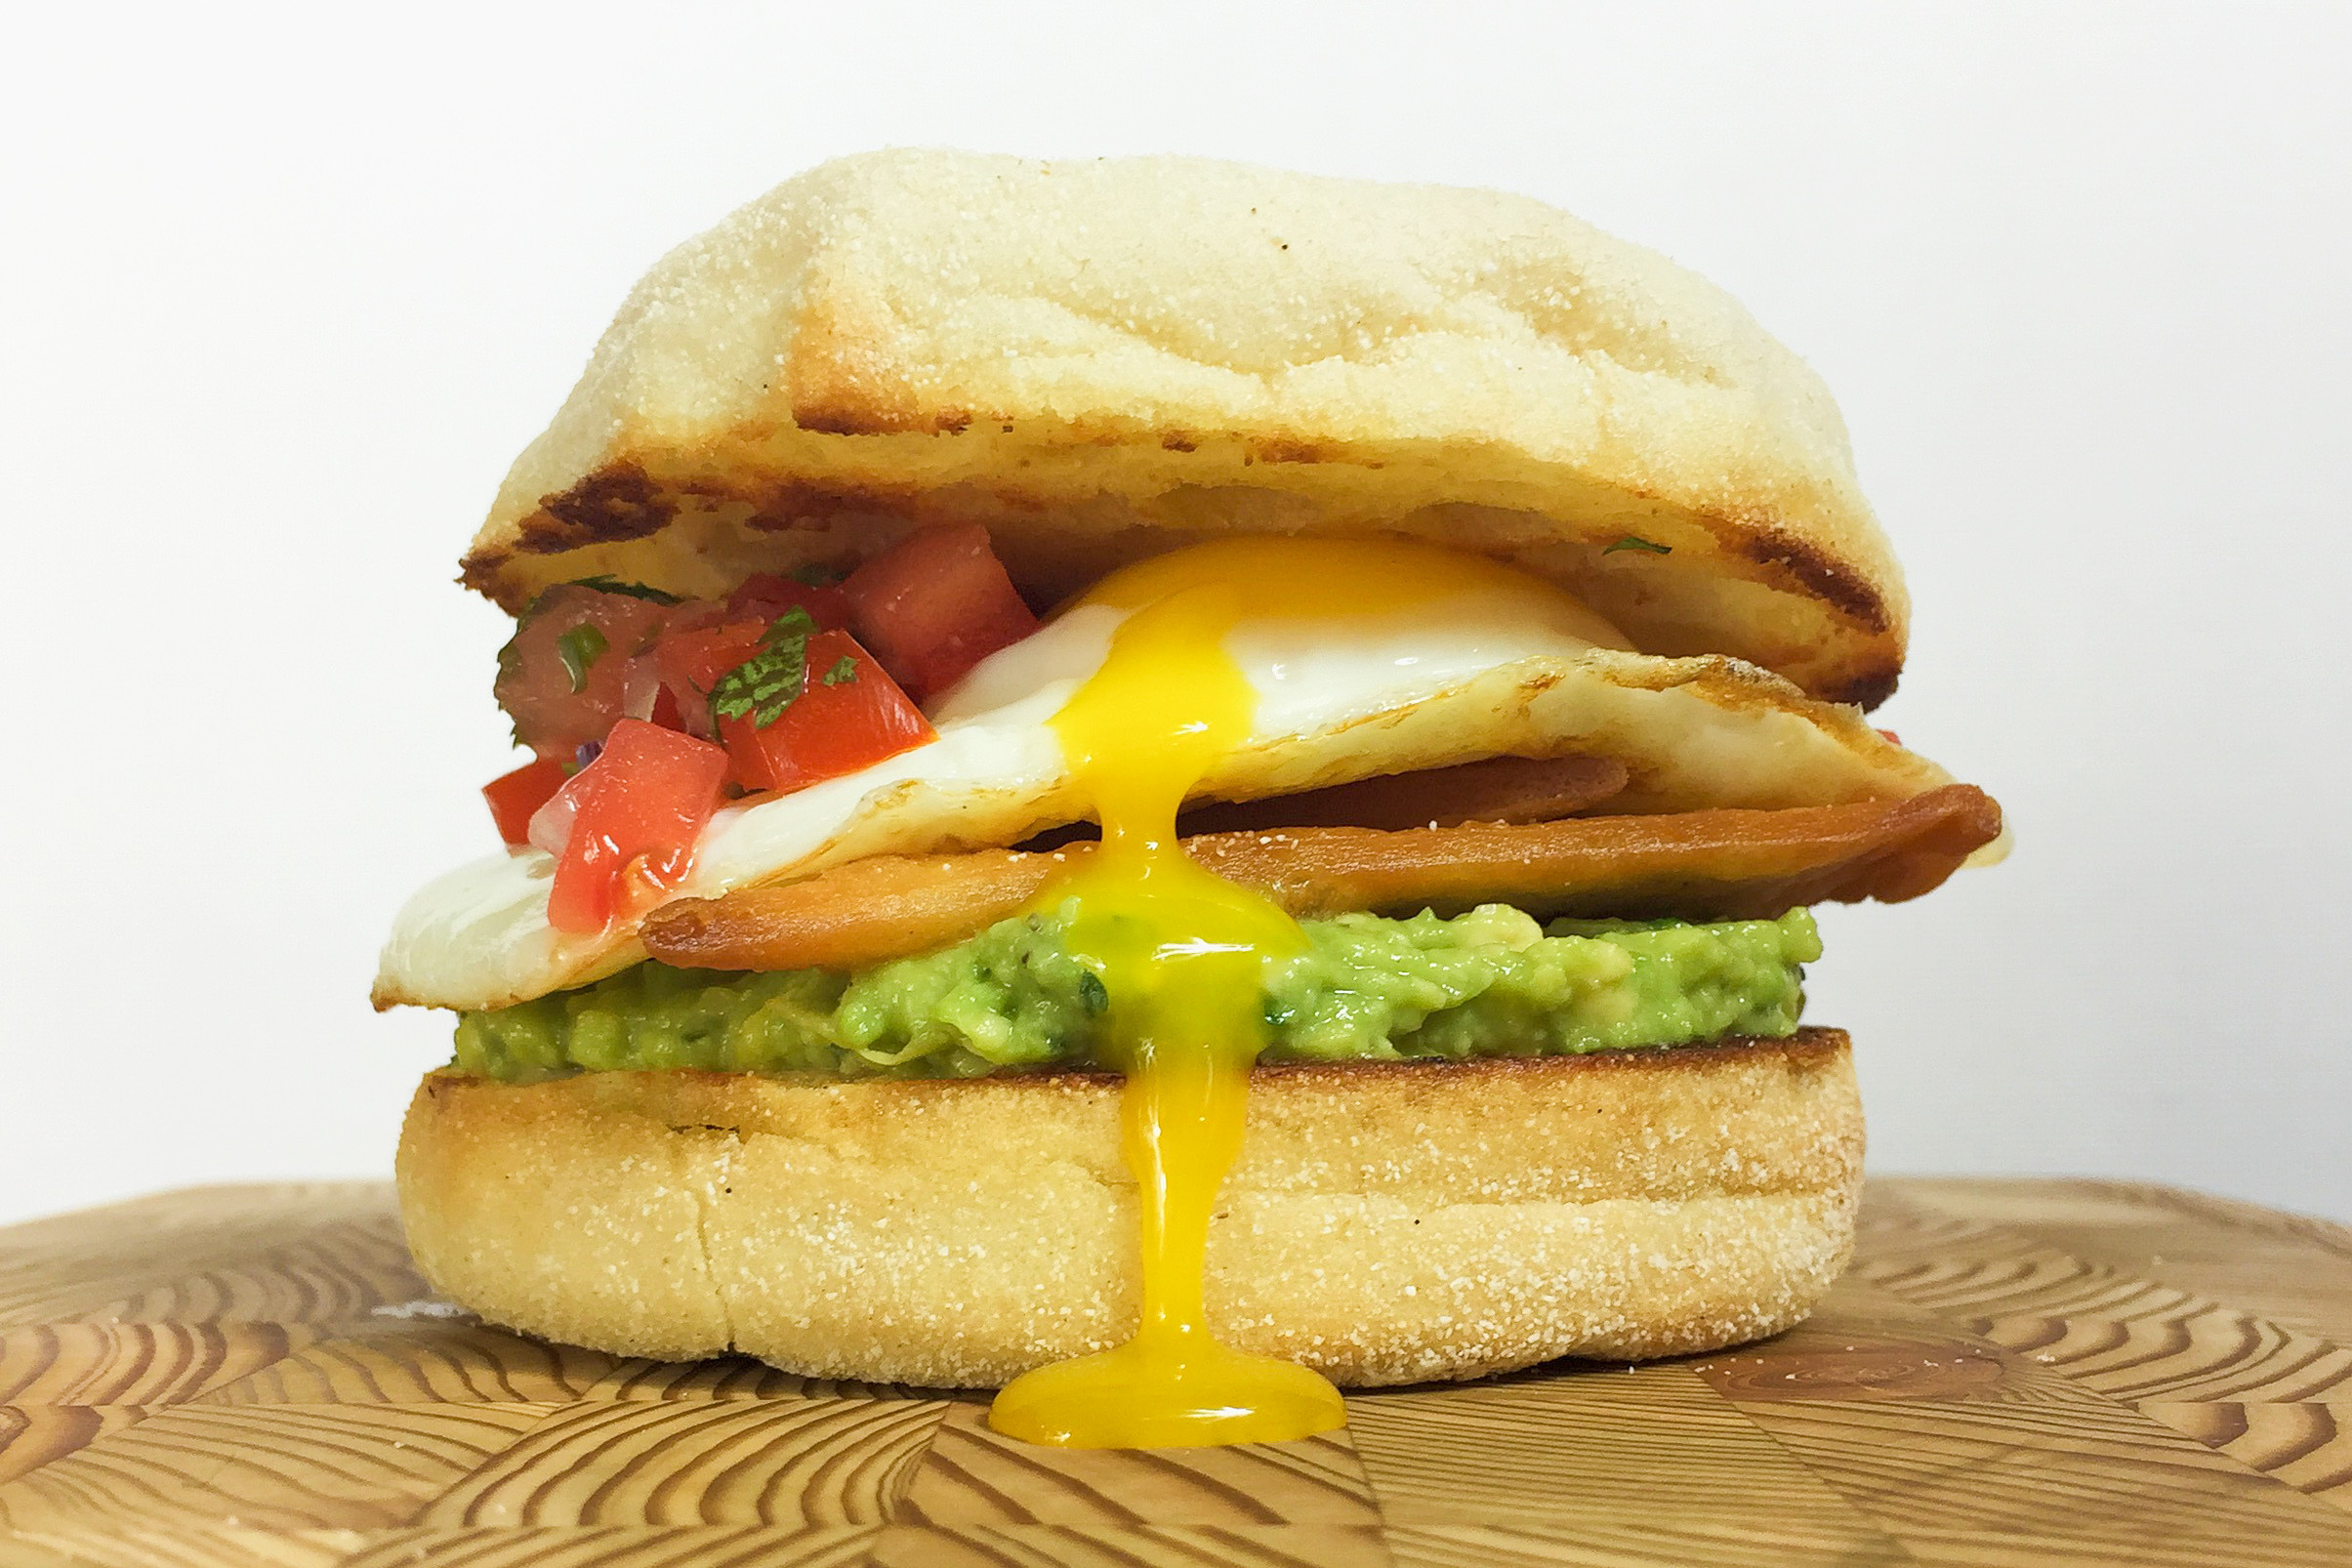 Breakfast Sandwich Recipes  30 Easy Breakfast Sandwich Recipes Ideas for Egg